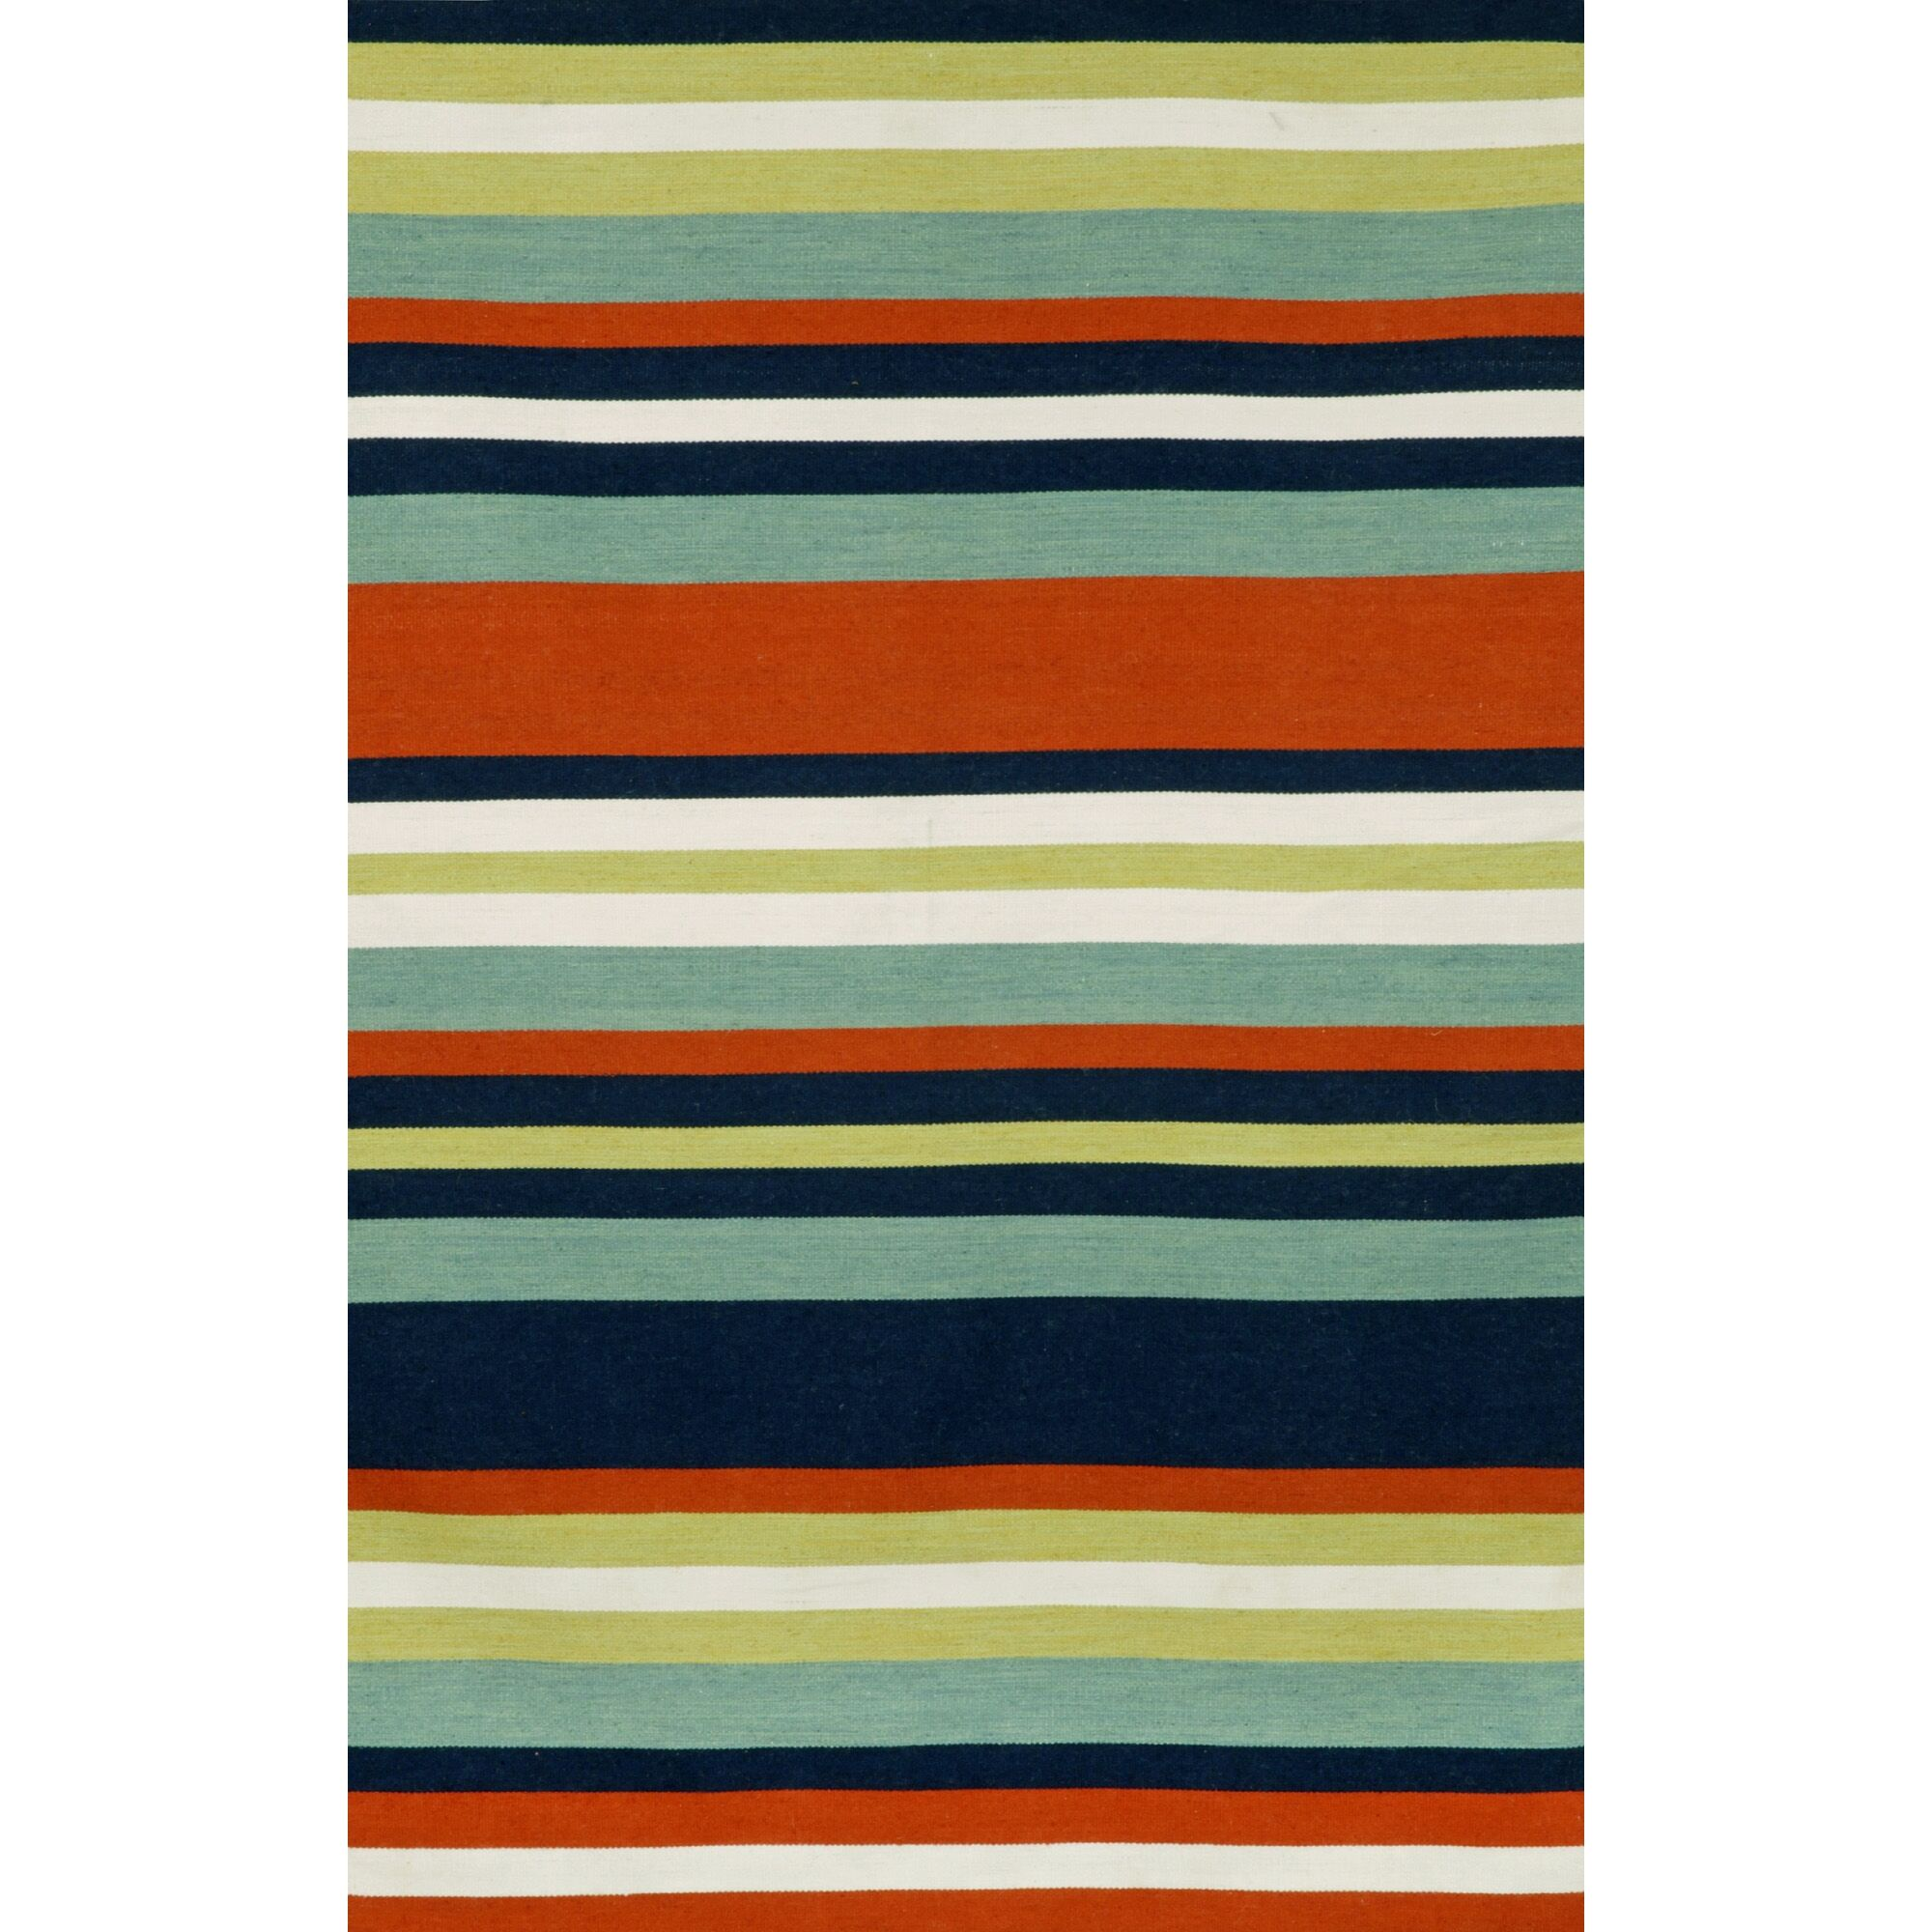 Ranier Hand-Woven Multi-Colored Indoor/Outdoor Area Rug Rug Size: Rectangle 7'6